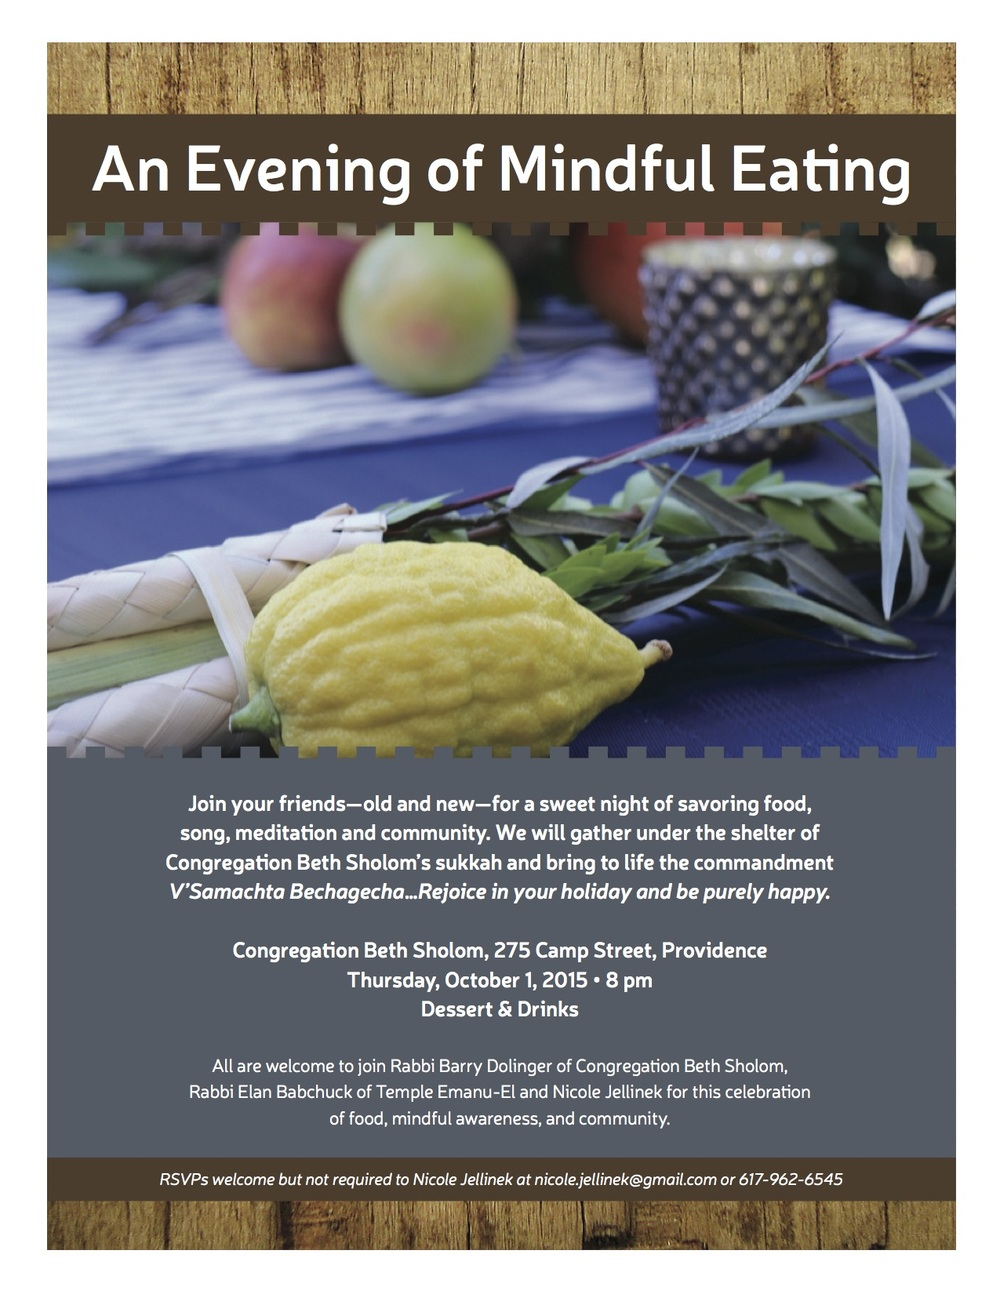 Evening of Mindful Eating flier [4987221].jpg